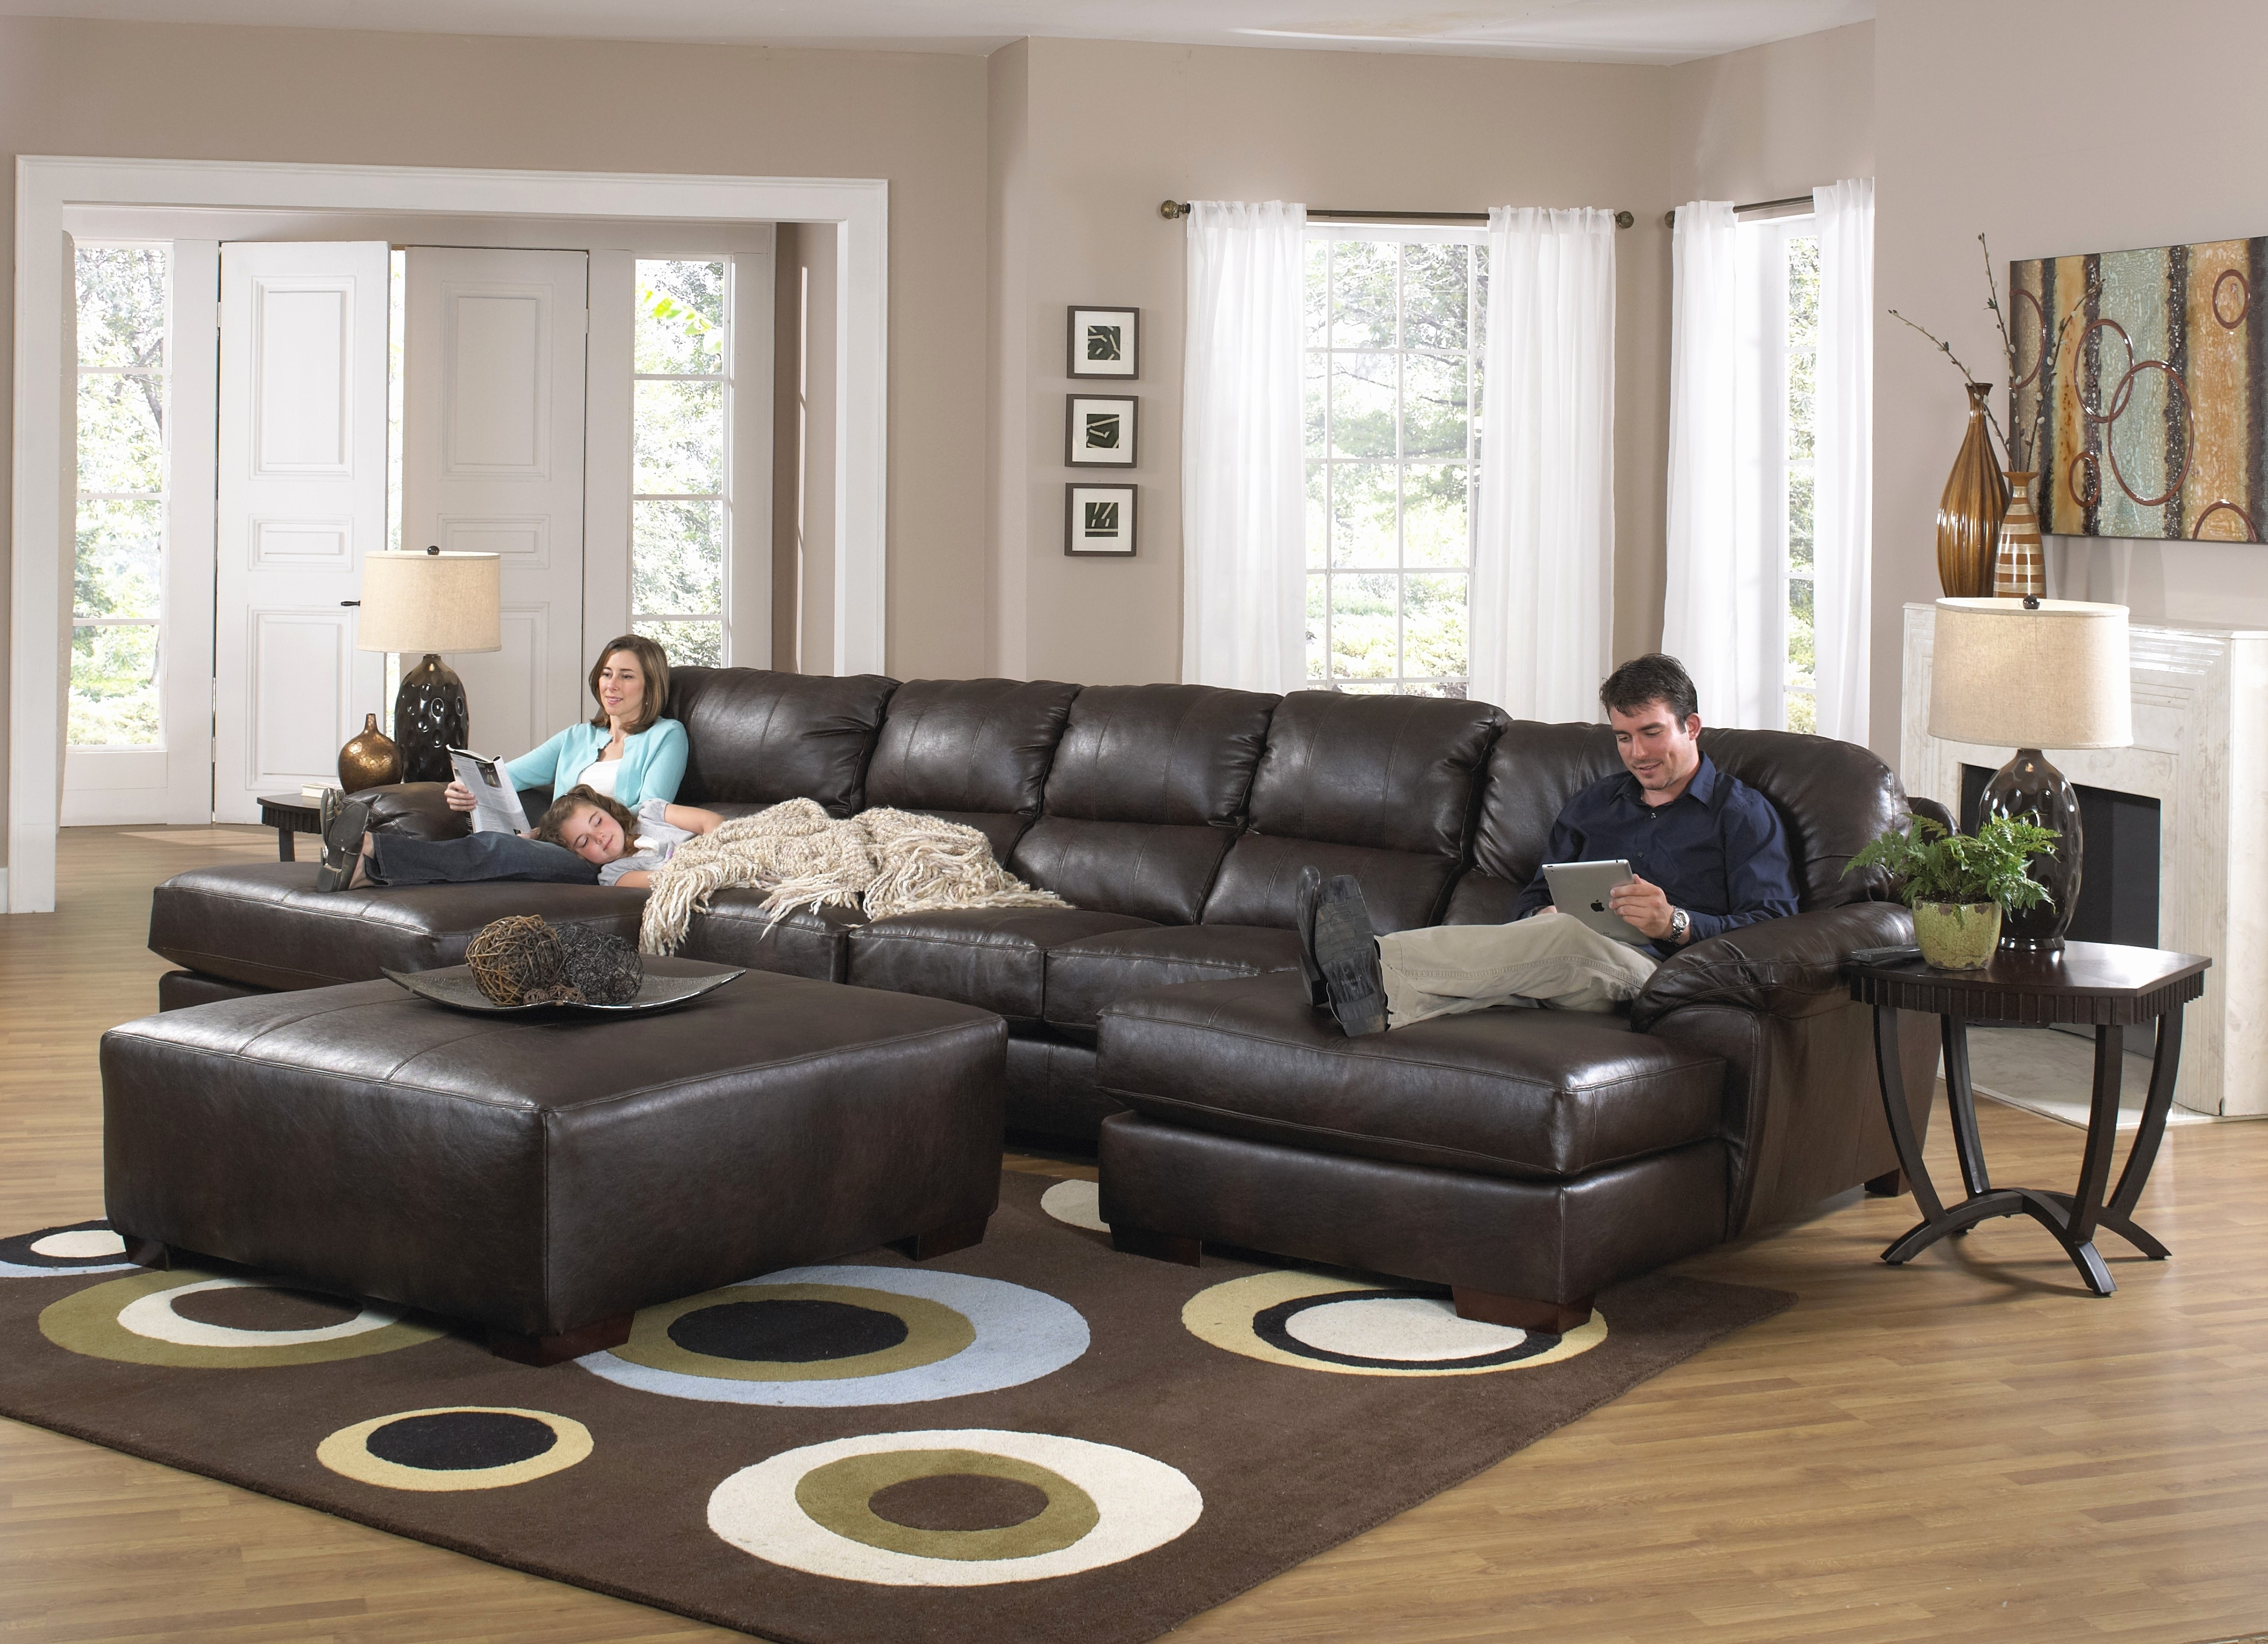 Awesome Raymour And Flanigan Recliners 2018 – Couches And Sofas Ideas intended for Sectional Sofas At Raymour And Flanigan (Image 6 of 15)